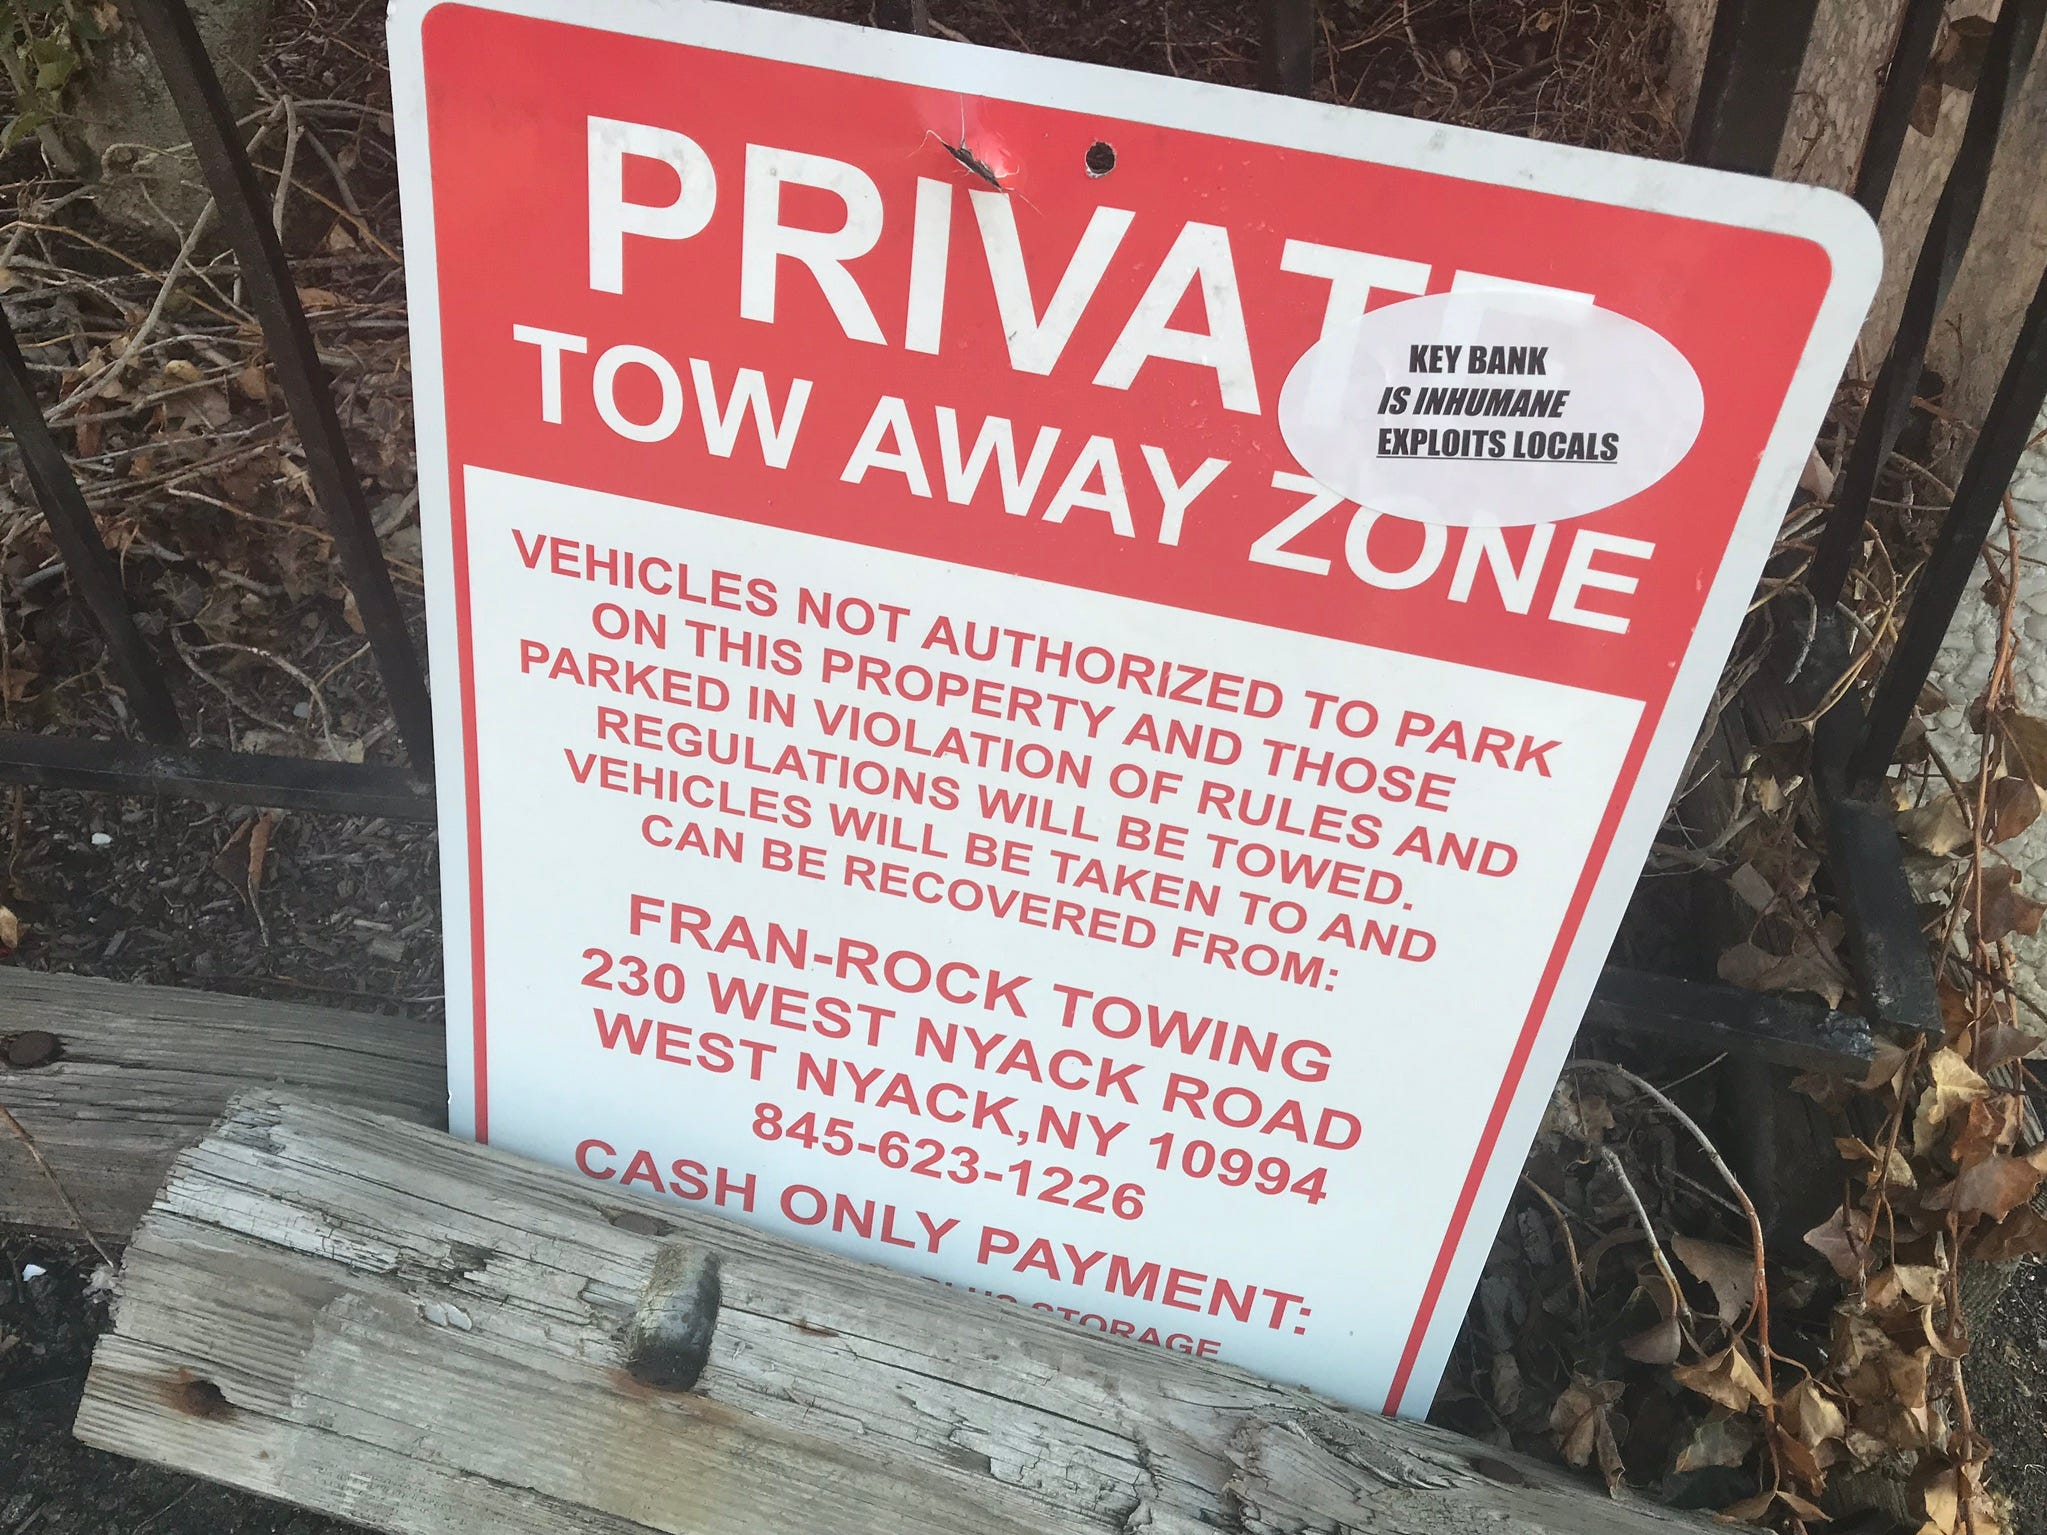 Protesters covered the sidewalk and parking signs at Nyack's Key Bank branch with stickers and graffiti on March 19, 2019, over the bank's policy of towing unauthorized cars from its parking lot. Mayor Don Hammond last week pulled his personal accounts from the bank and suggested he'd pursue an effort to pull the village's $2.6 million in deposits from the branch over what he calls unneighborly actions.